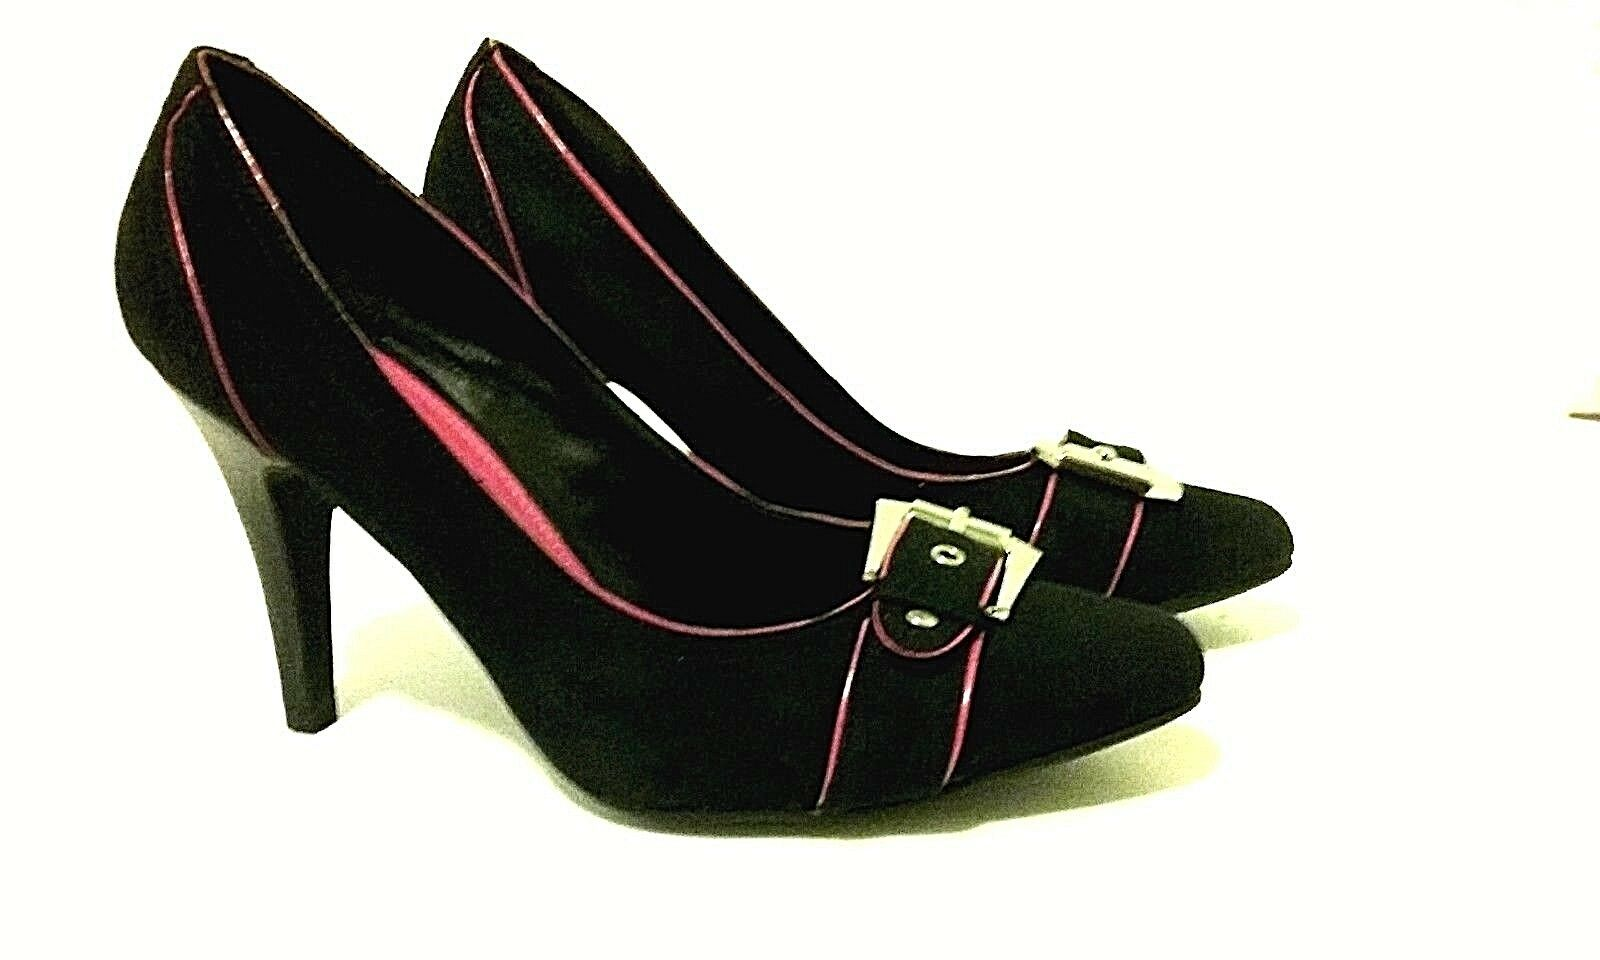 New Directions Womens shoes Sz S 7 Med Black Suede Like 41 2 Heels Hot Pink Trim